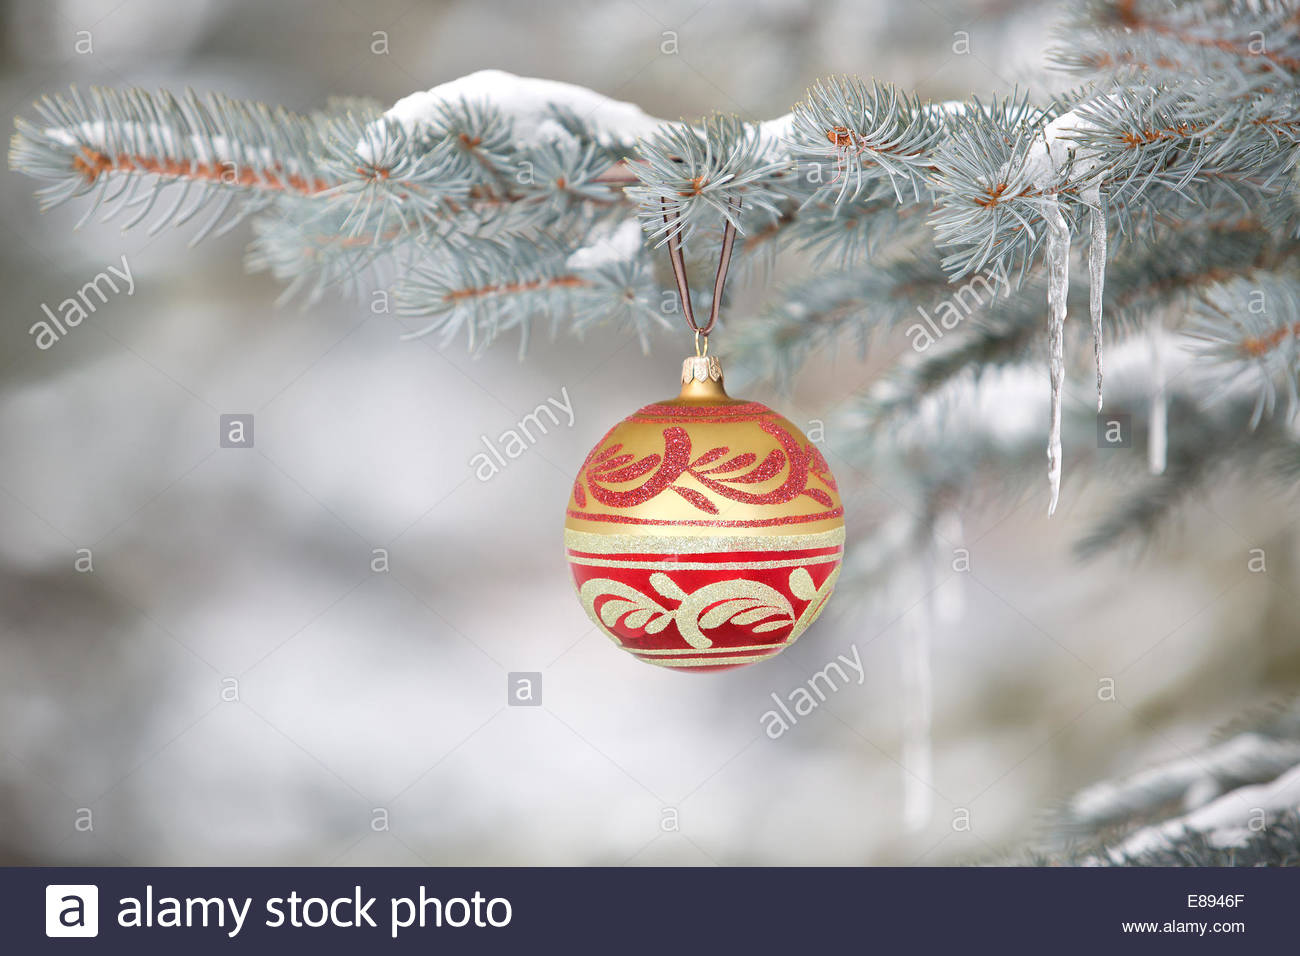 Christmas ornament hanging on tree avec glaçons Photo Stock